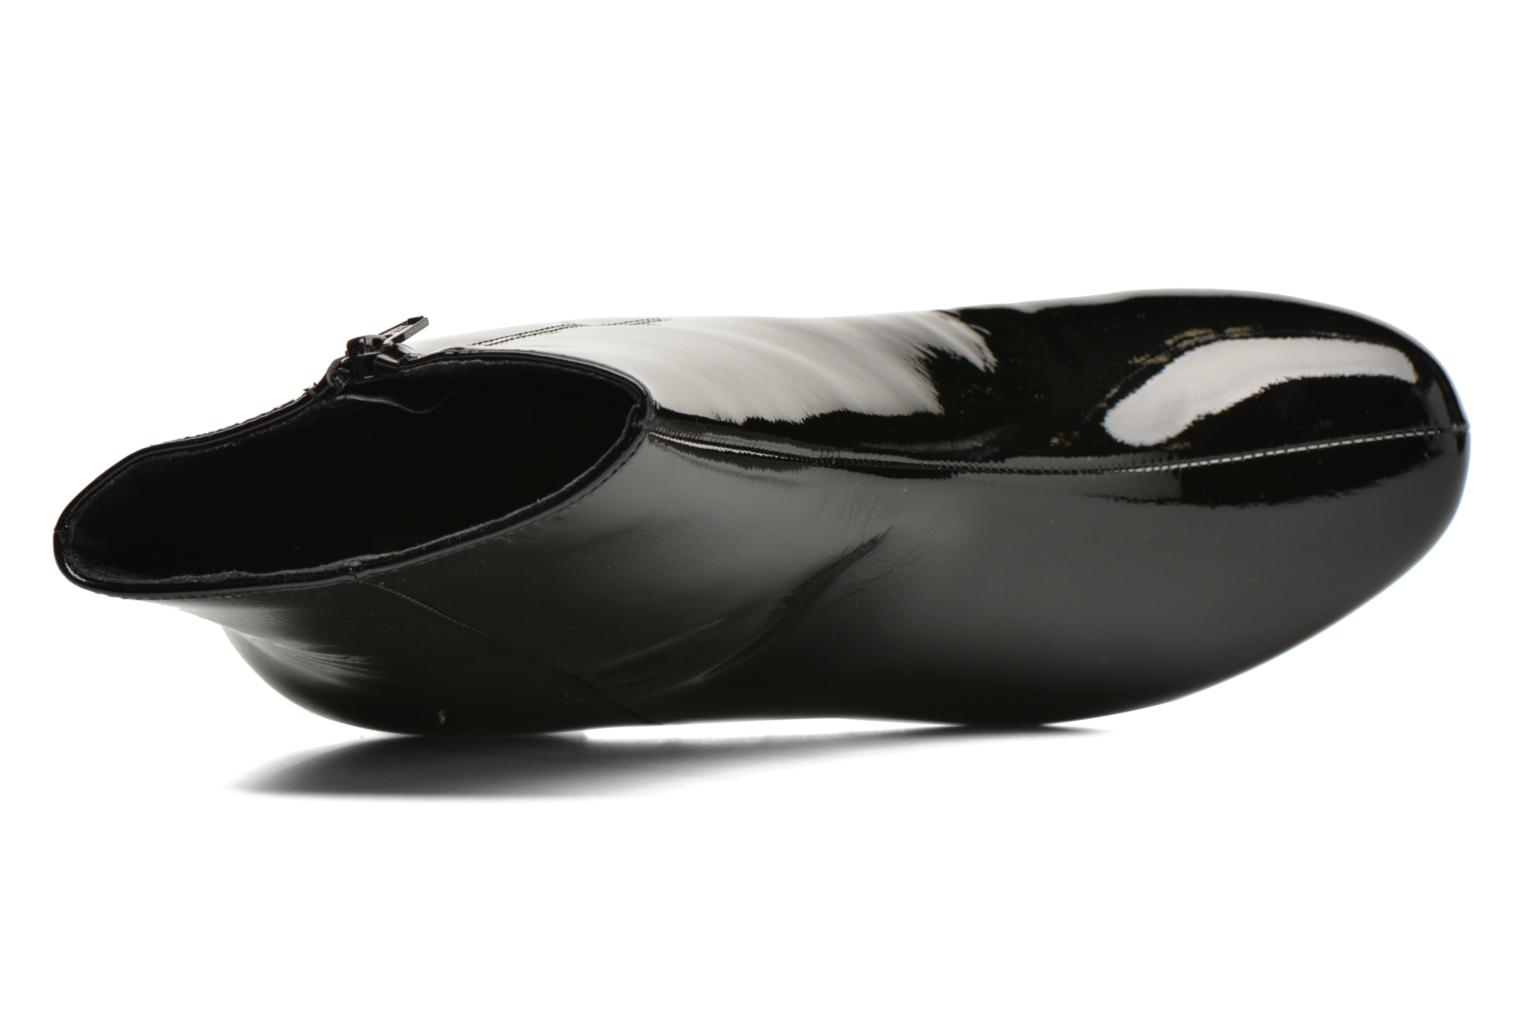 Pebble Black patent leather